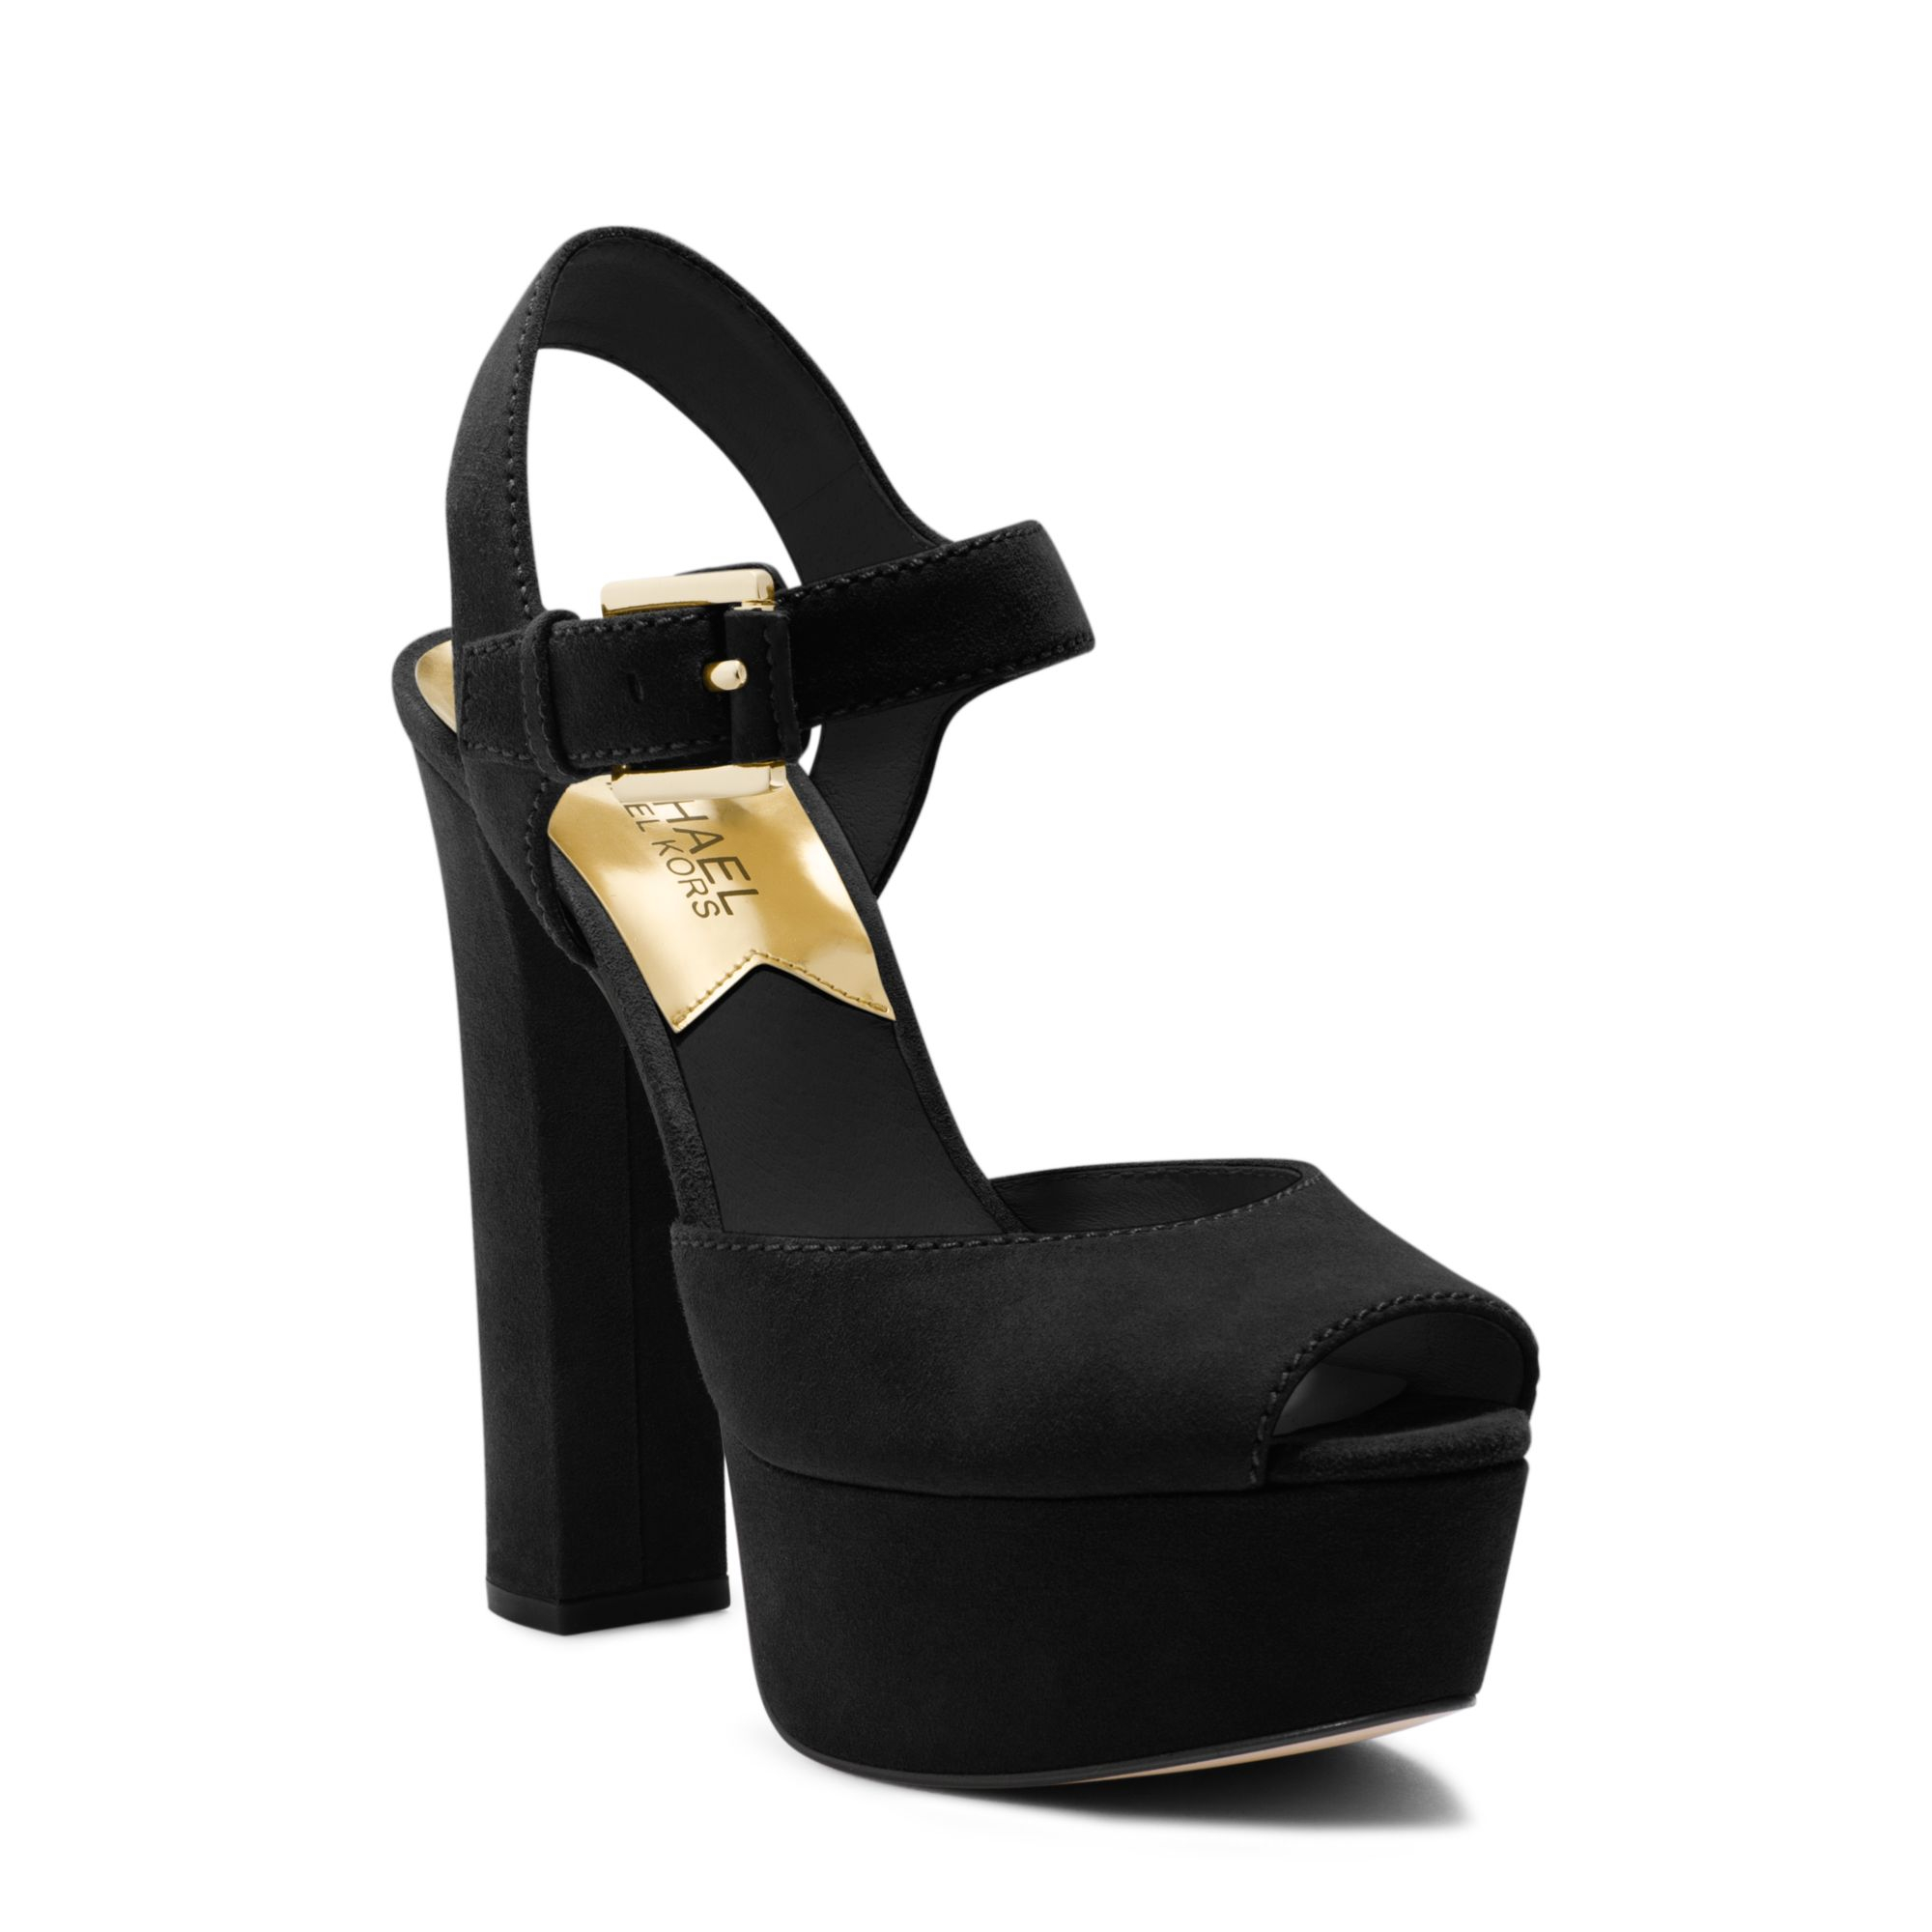 1ae35296932 Lyst - Michael Kors London Suede Platform Peep-toe Sandal in Black